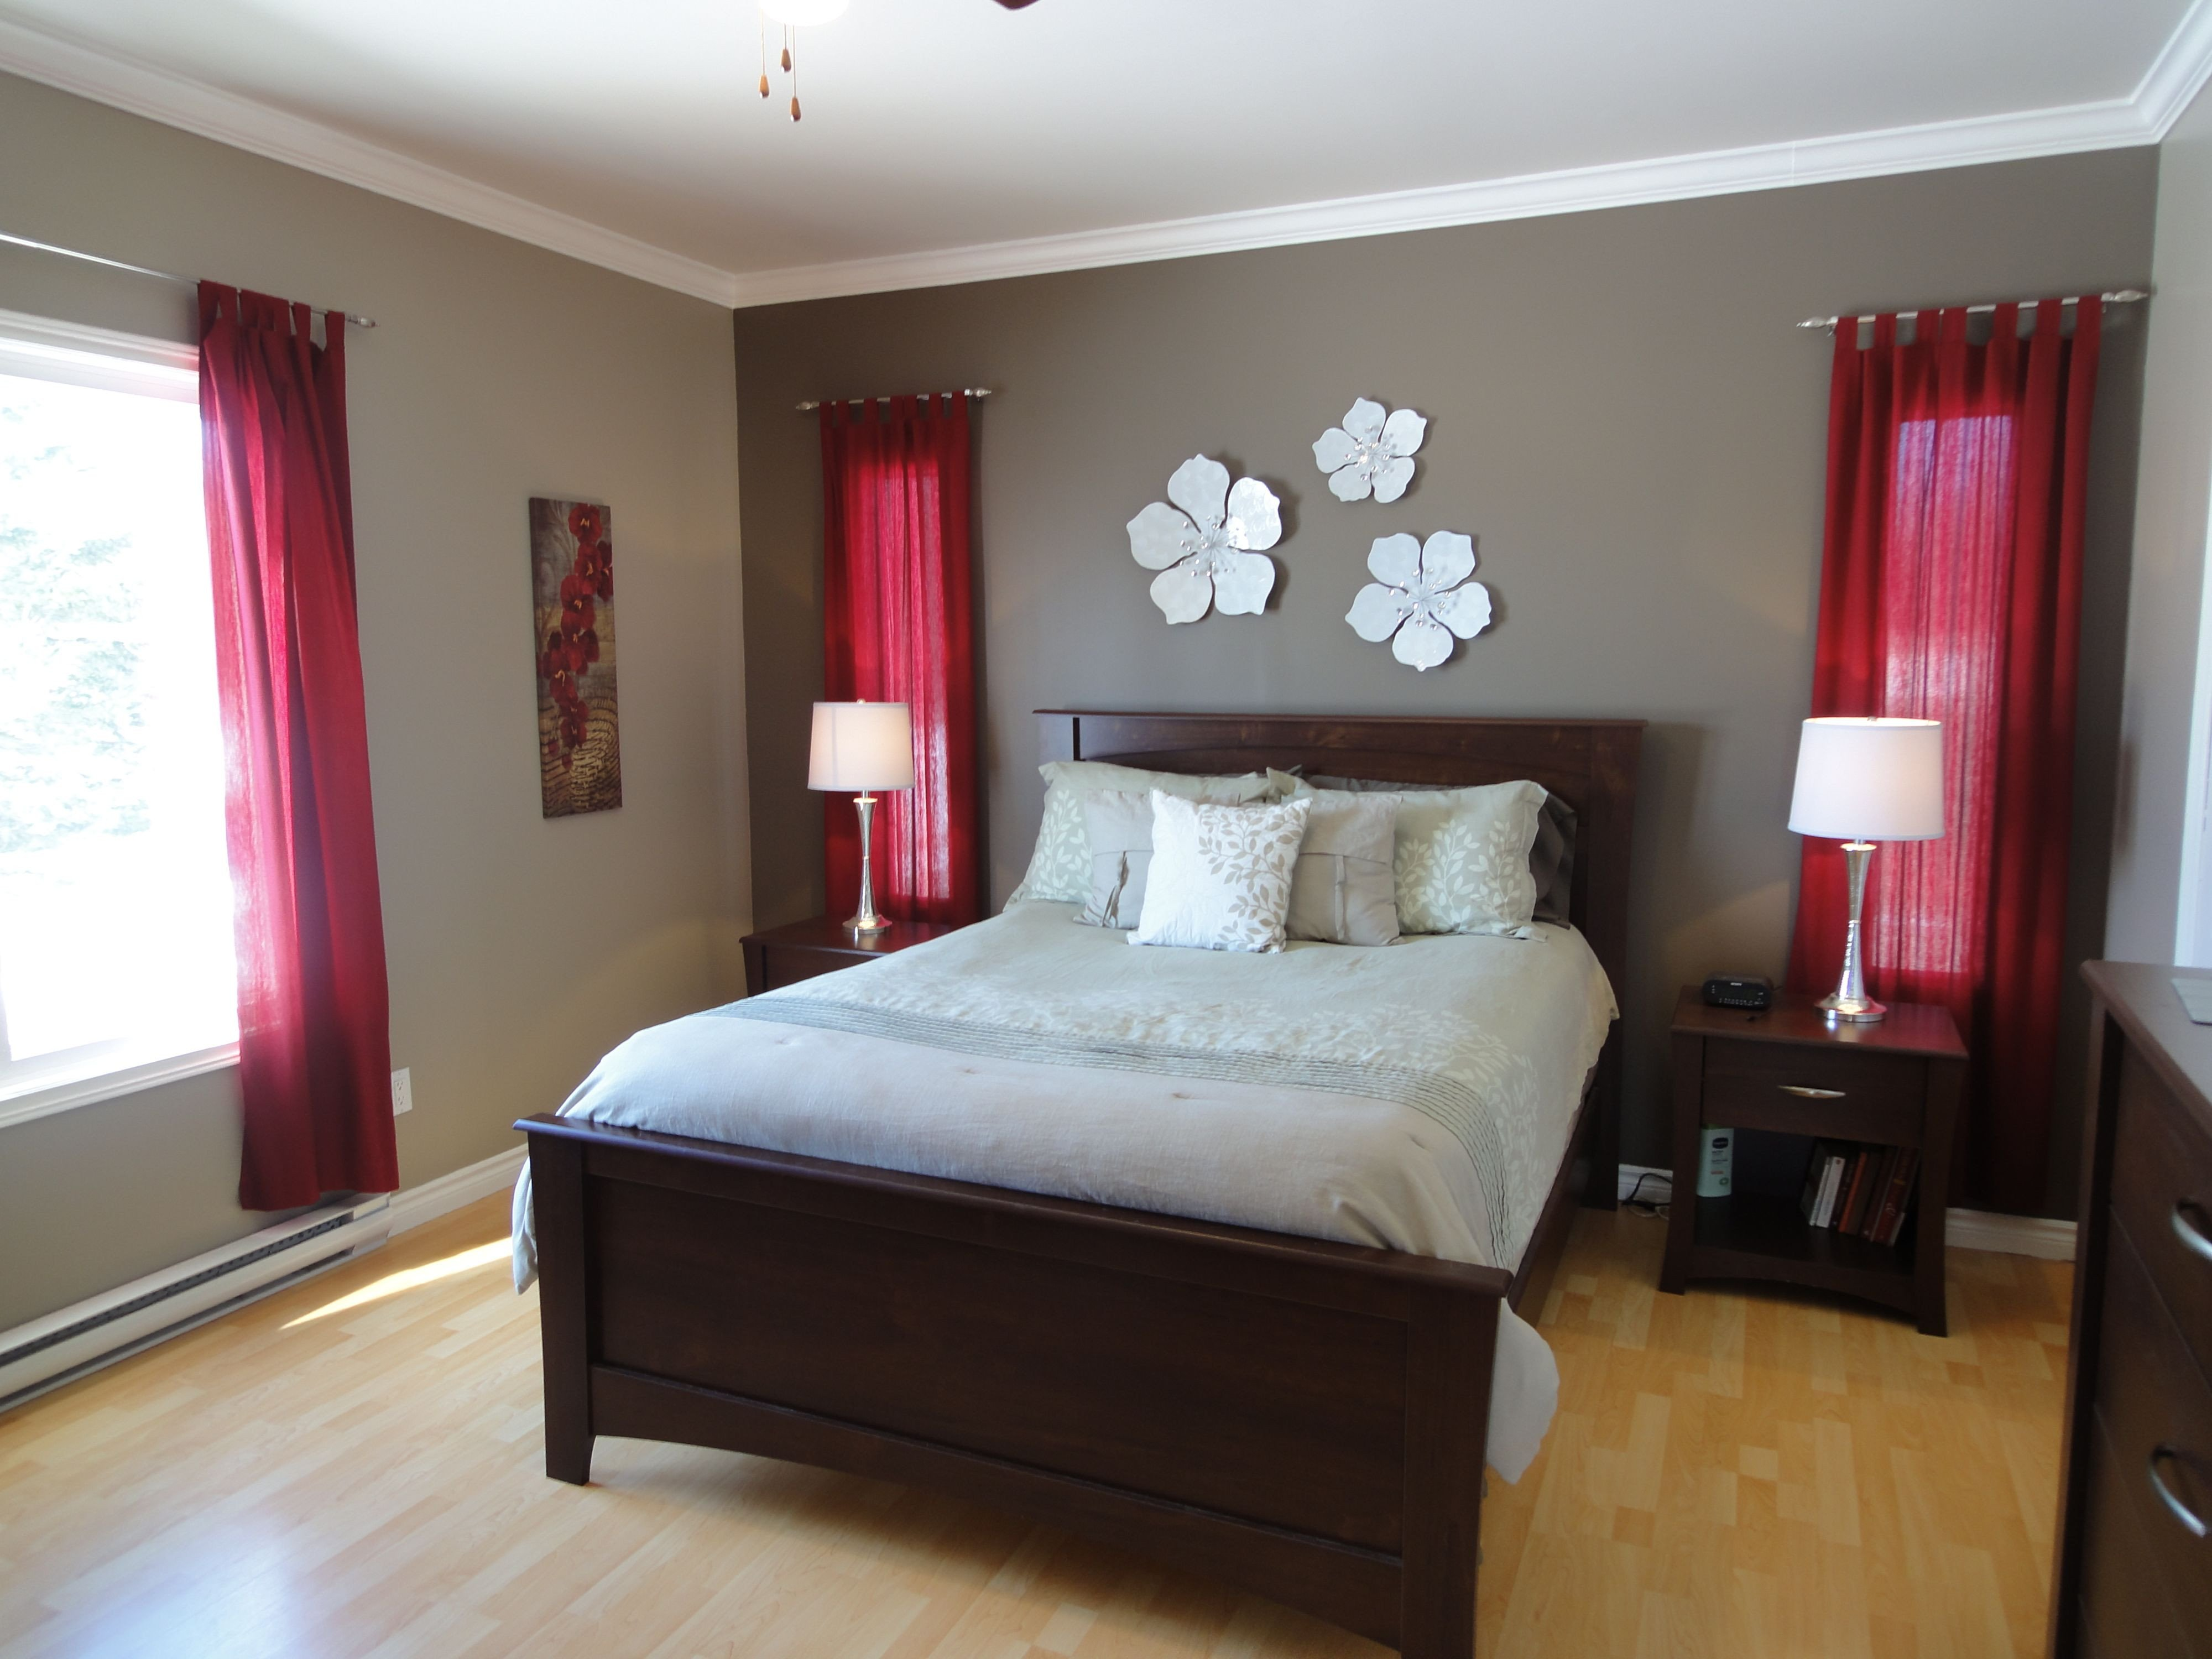 Grey and Red Bedroom Best Of I Just Decorated Our Guest Bedroom with Red Accents I Would